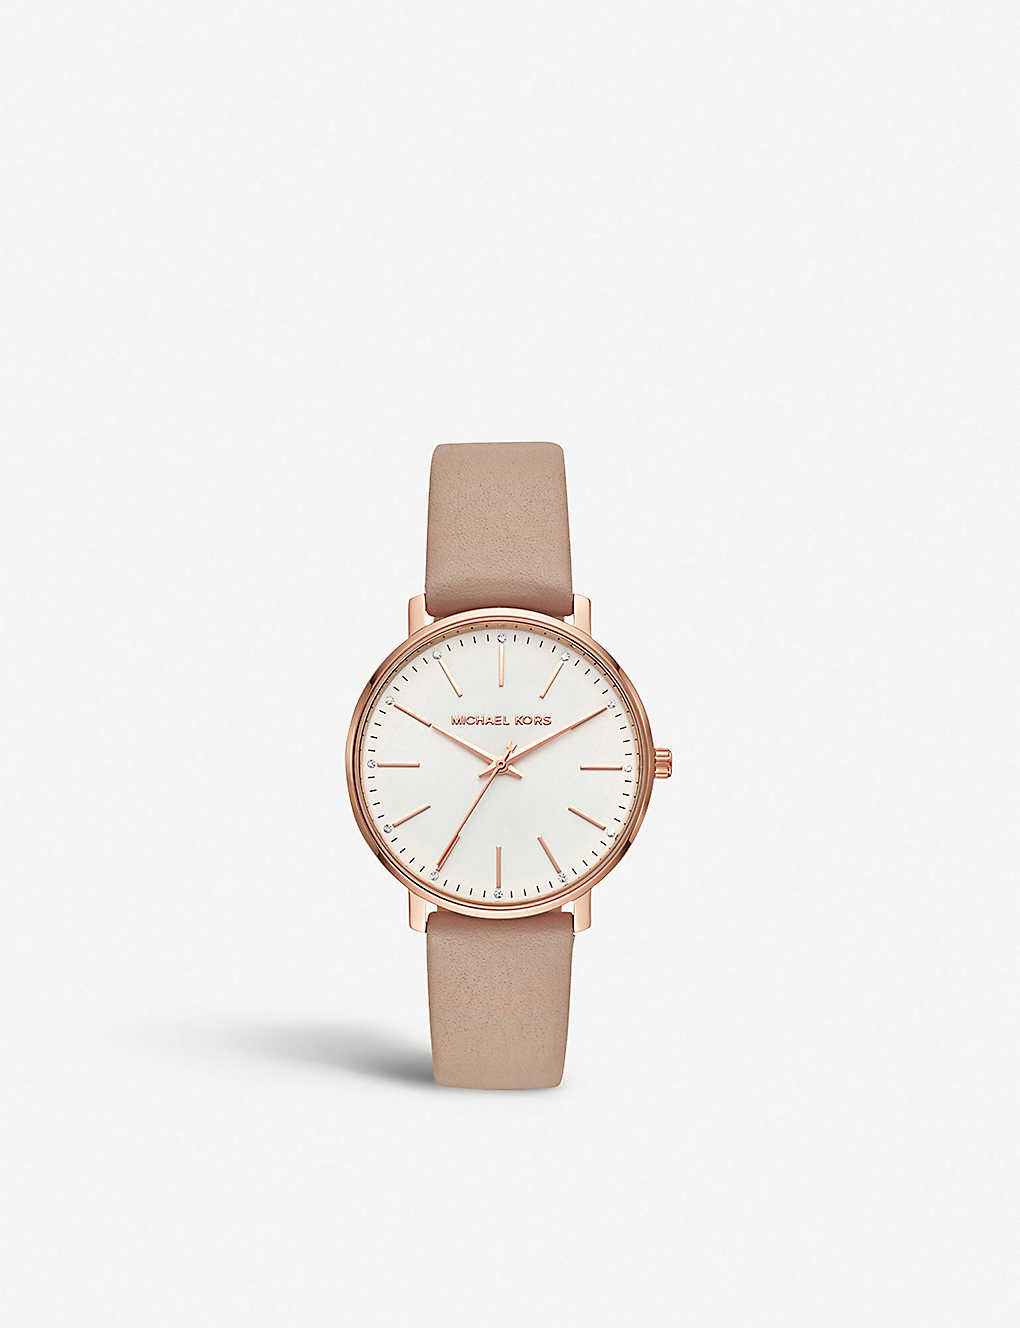 f917acca0da3 MICHAEL KORS - MK2748 Pyper rose-gold stainless steel and leather ...